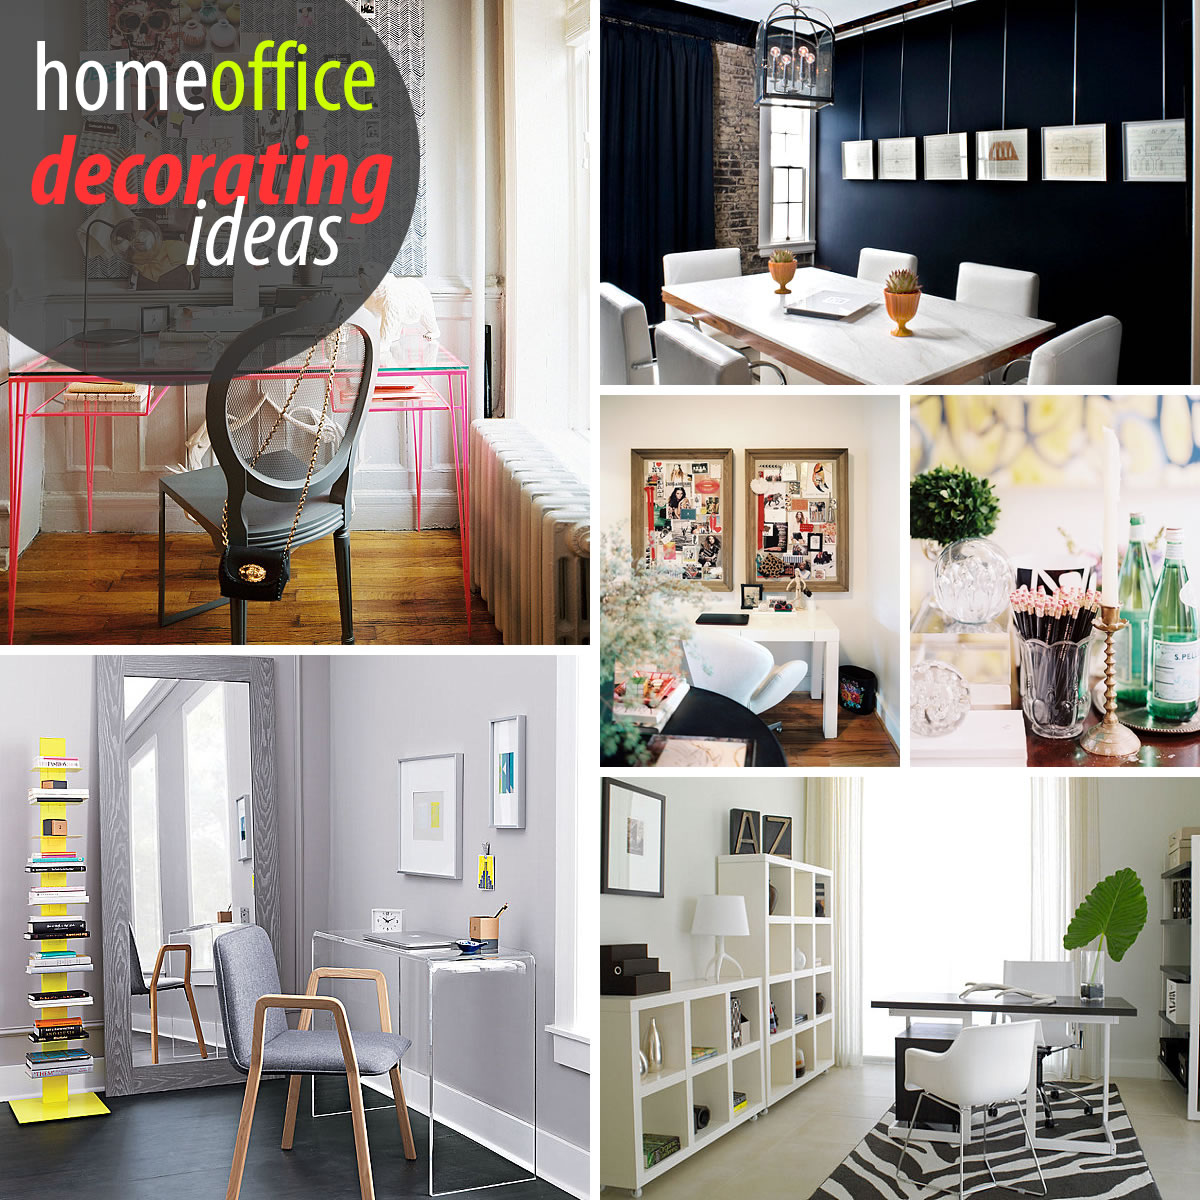 Creative home office decorating ideas Office room decoration ideas